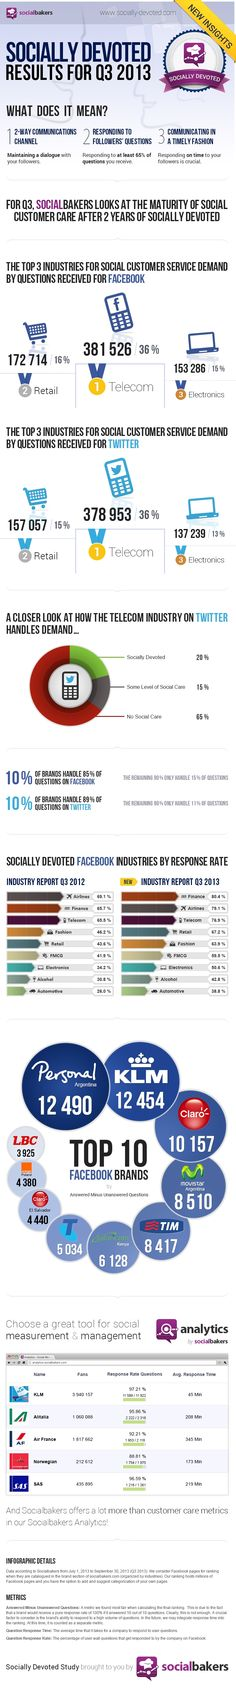 Infographic: Best Customer Service Provider on Facebook is an Airline Company   #infographic #facebook